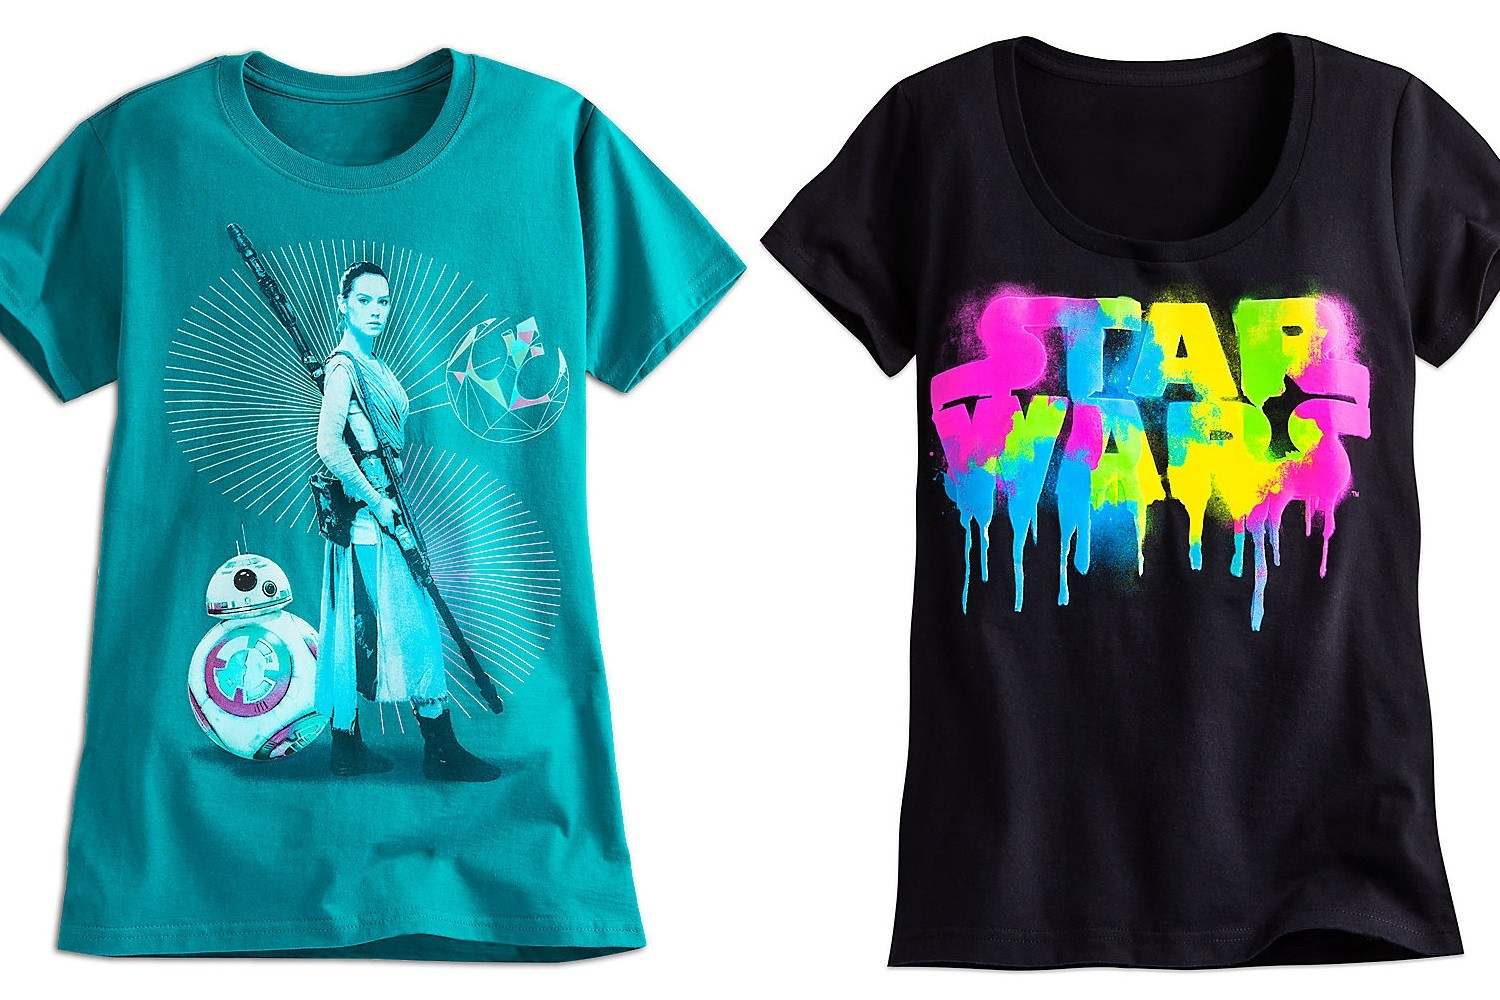 New arrivals at the Disney Store